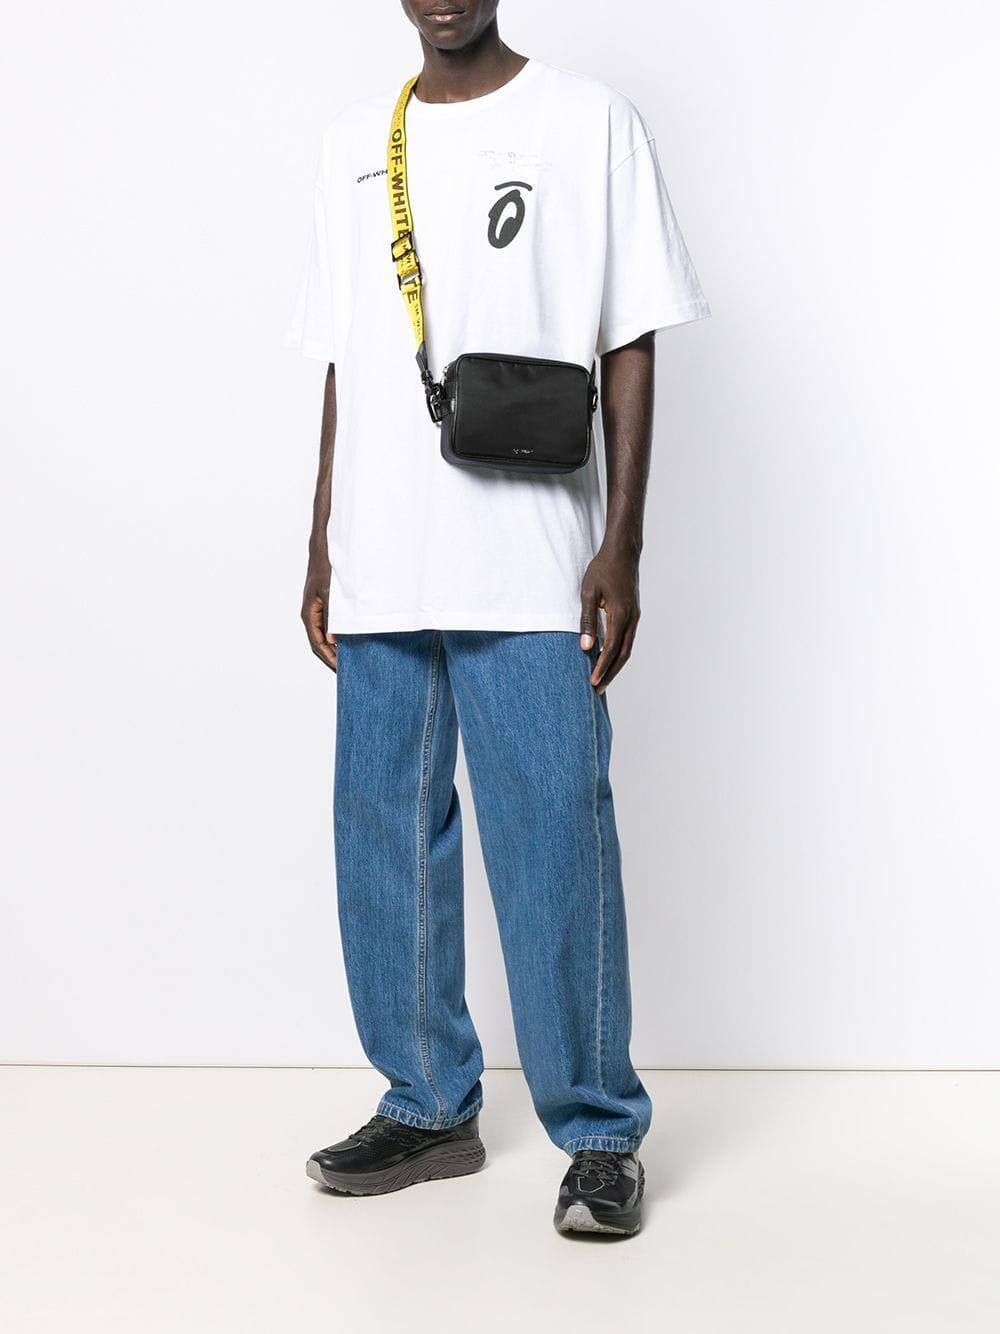 67c061db4 Off-White c/o Virgil Abloh Logo Strap Cross-body Bag in Black for Men - Lyst